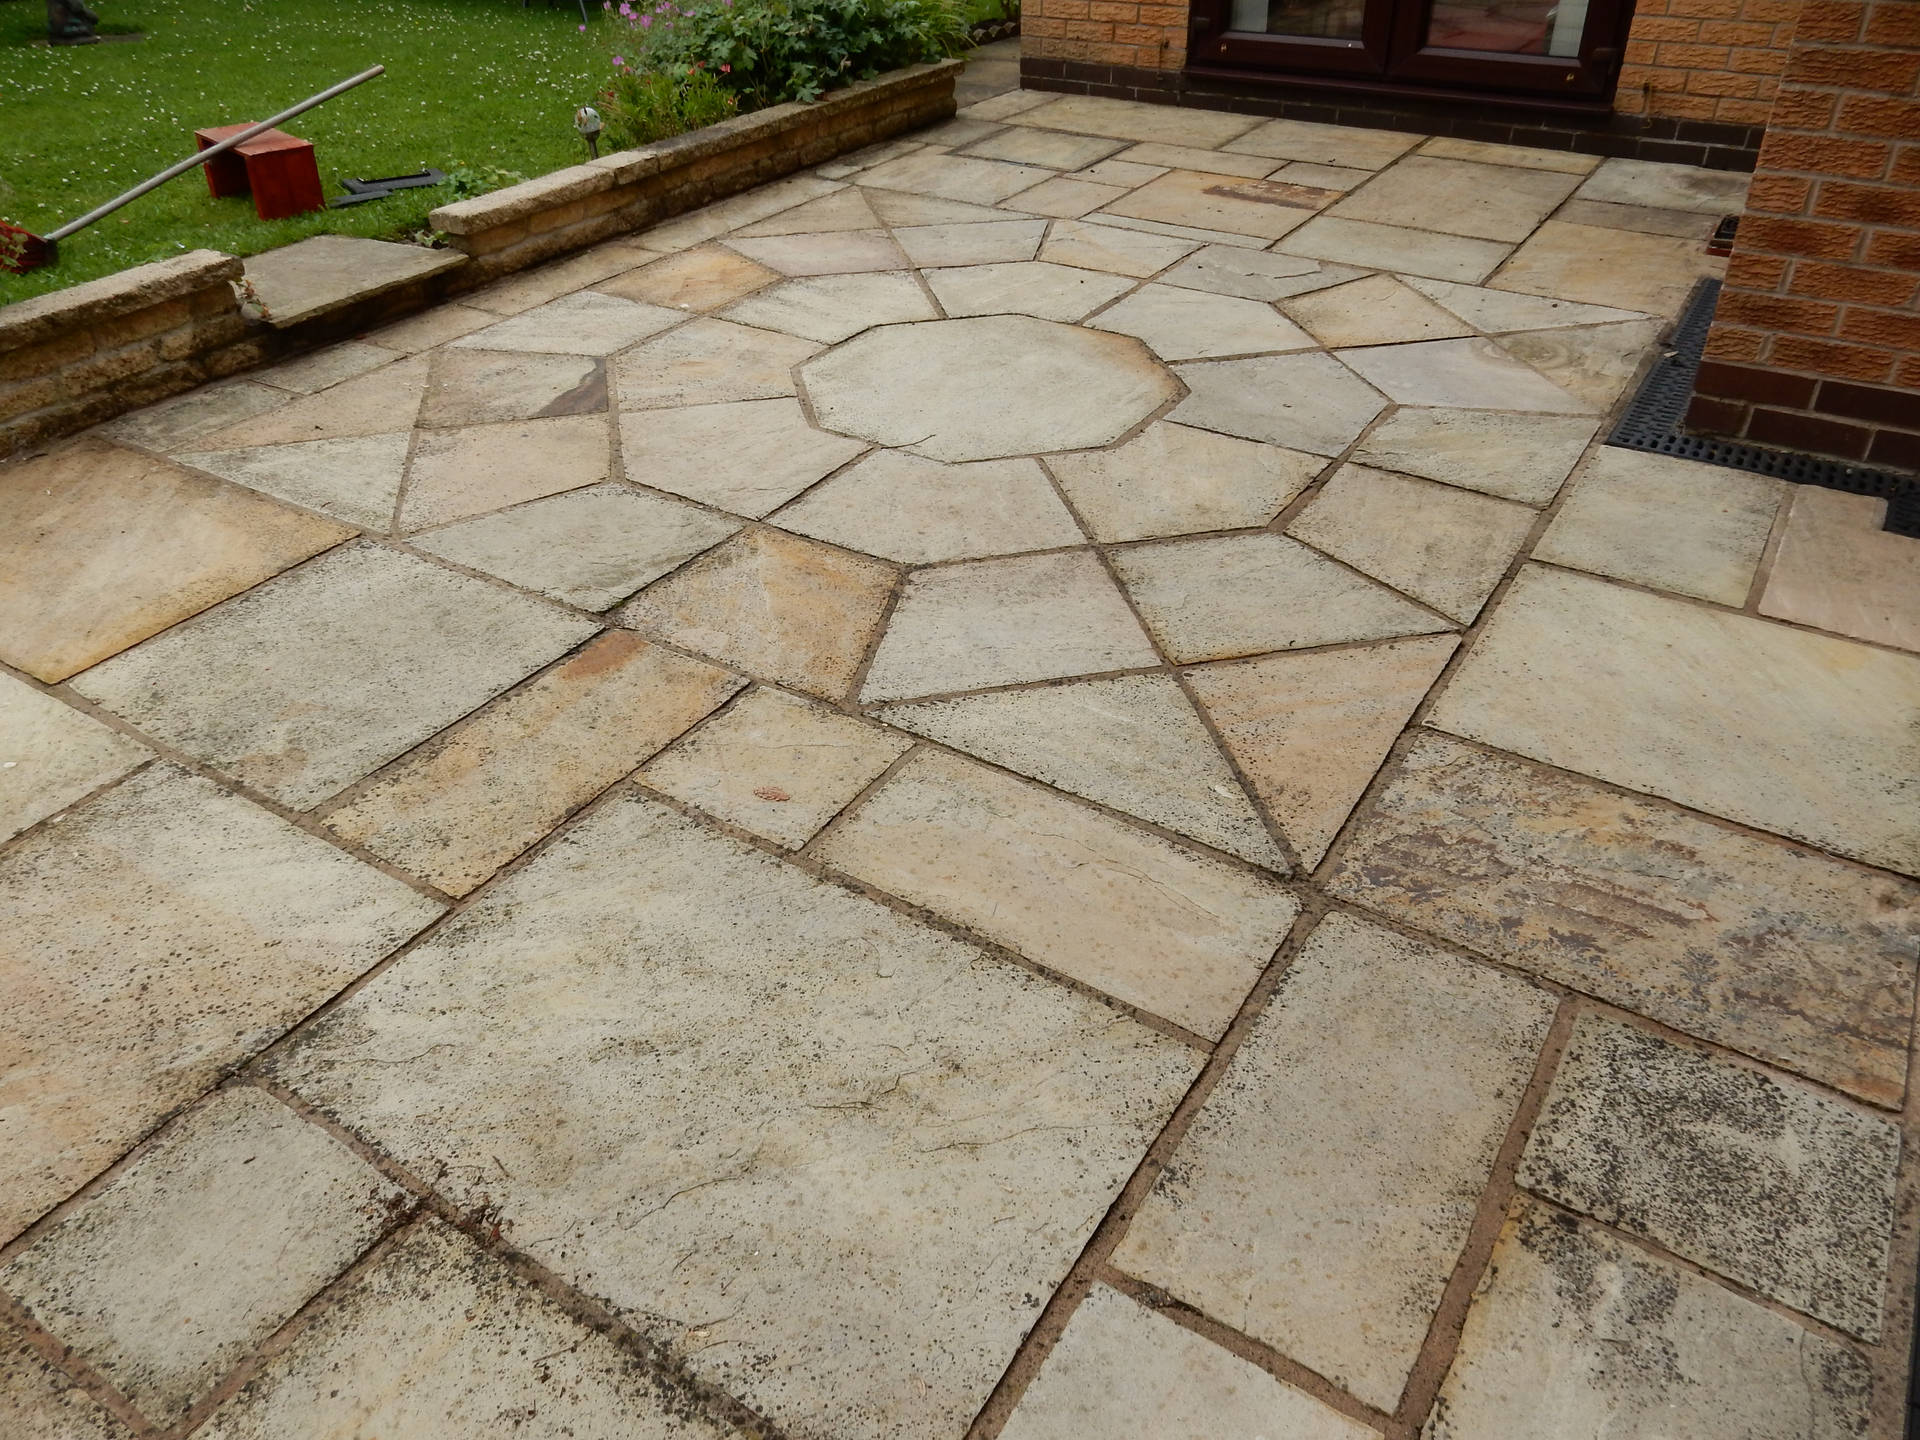 Indian Sandstone Patio Before Cleaning